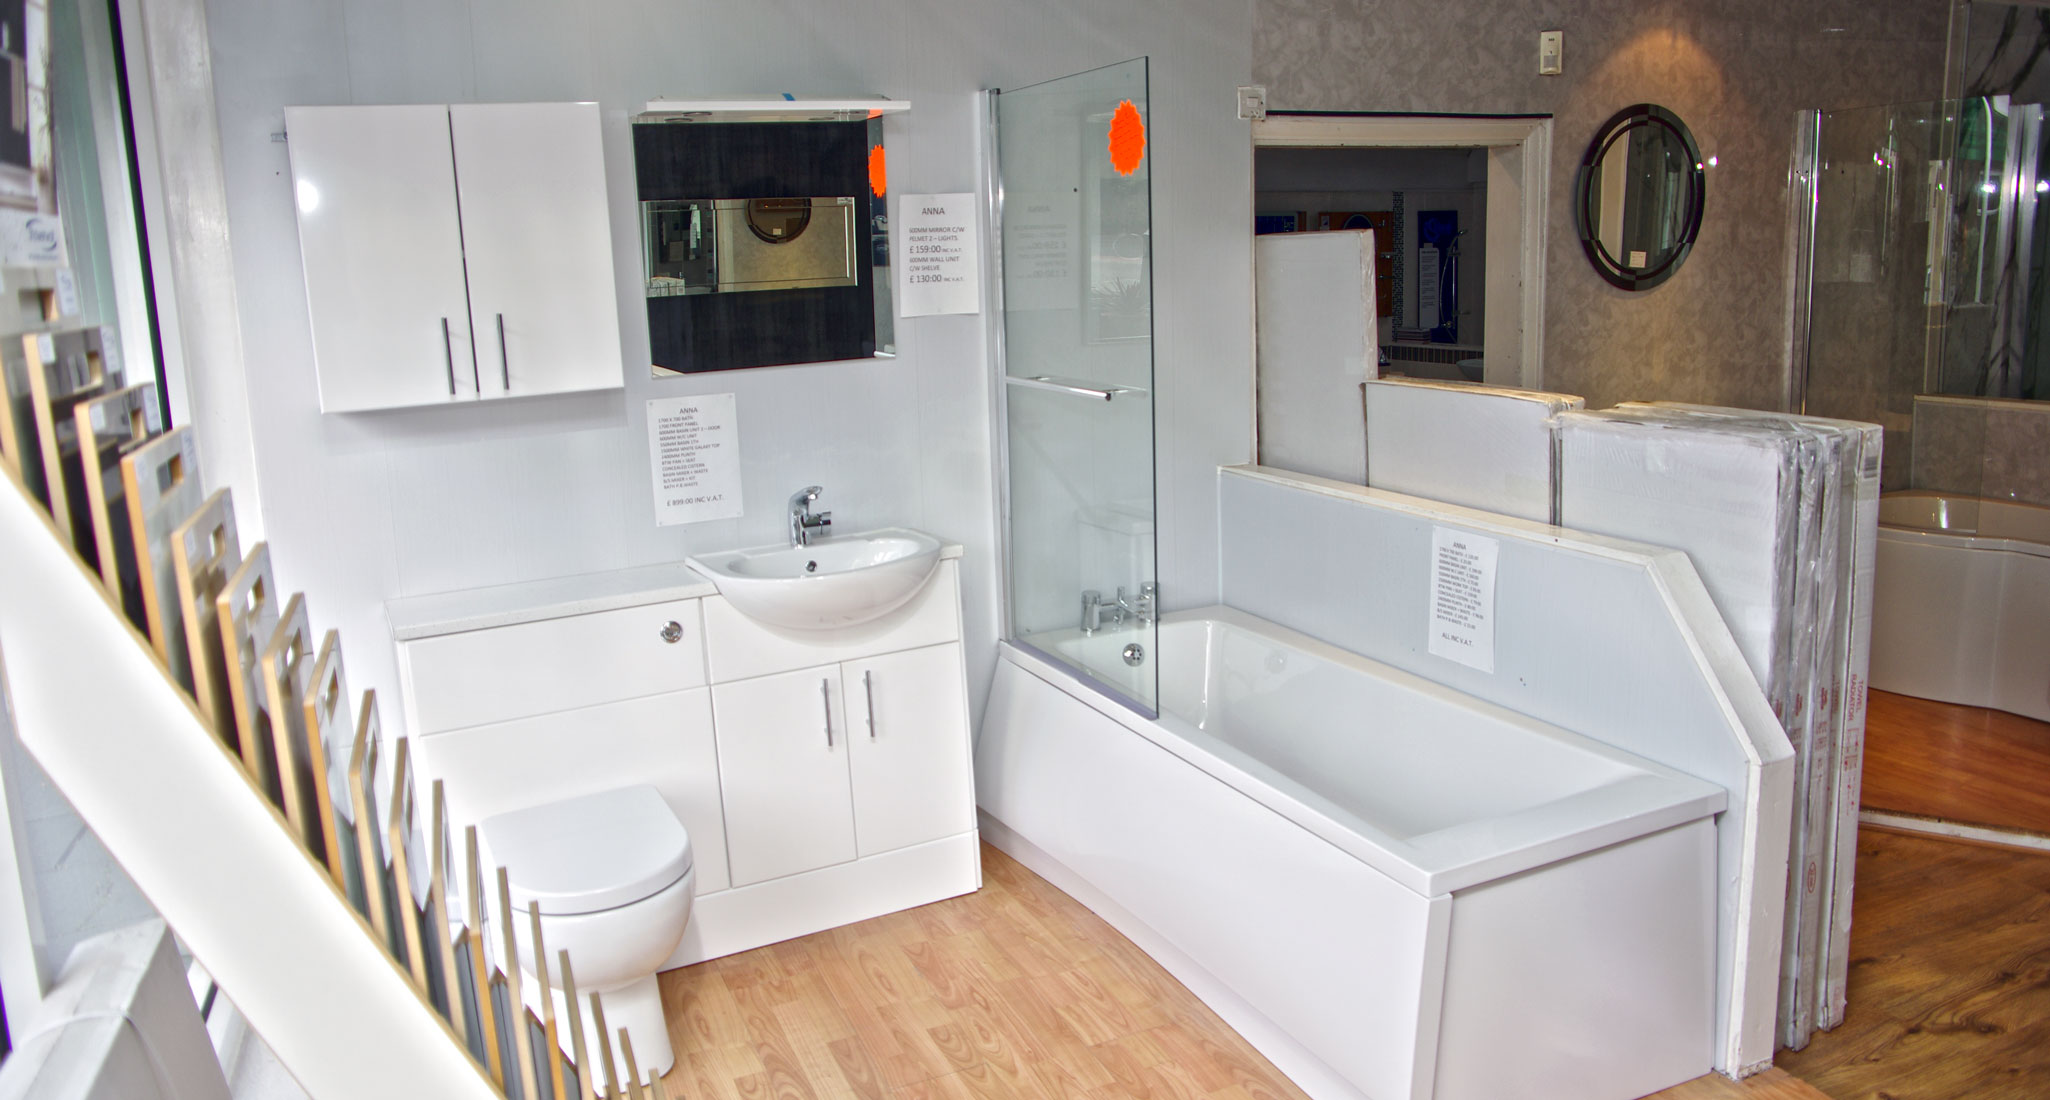 bury-plumbers-showroom-3-large